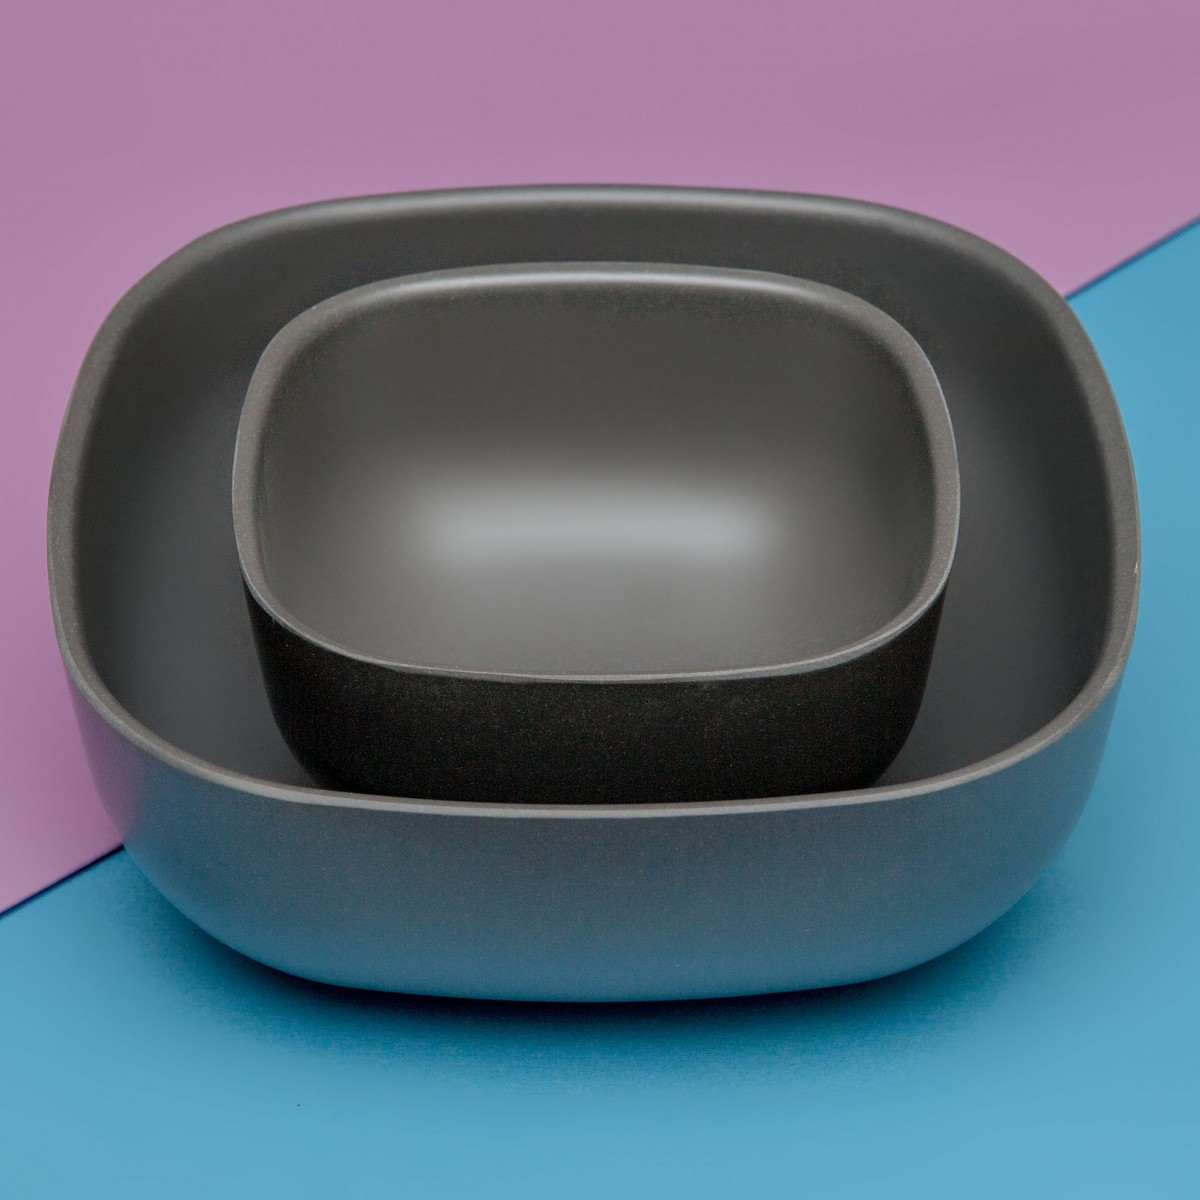 Practical Bowl in Black